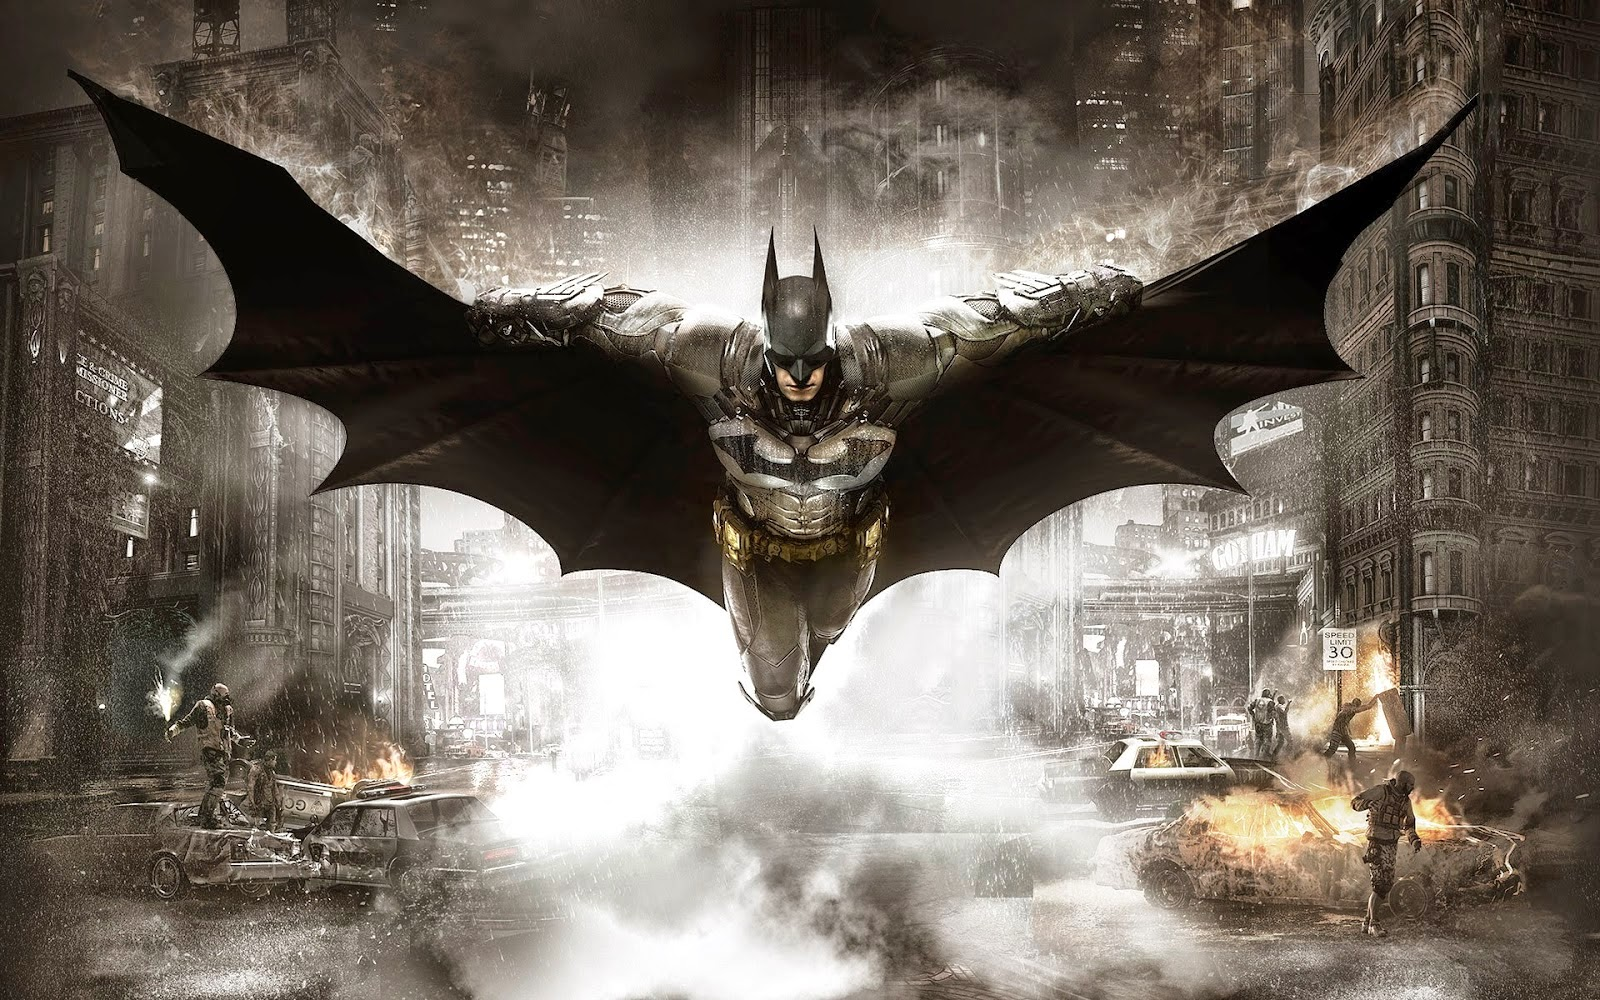 http://psgamespower.blogspot.com/2014/12/batman-arkham-knight-video-de_6.html